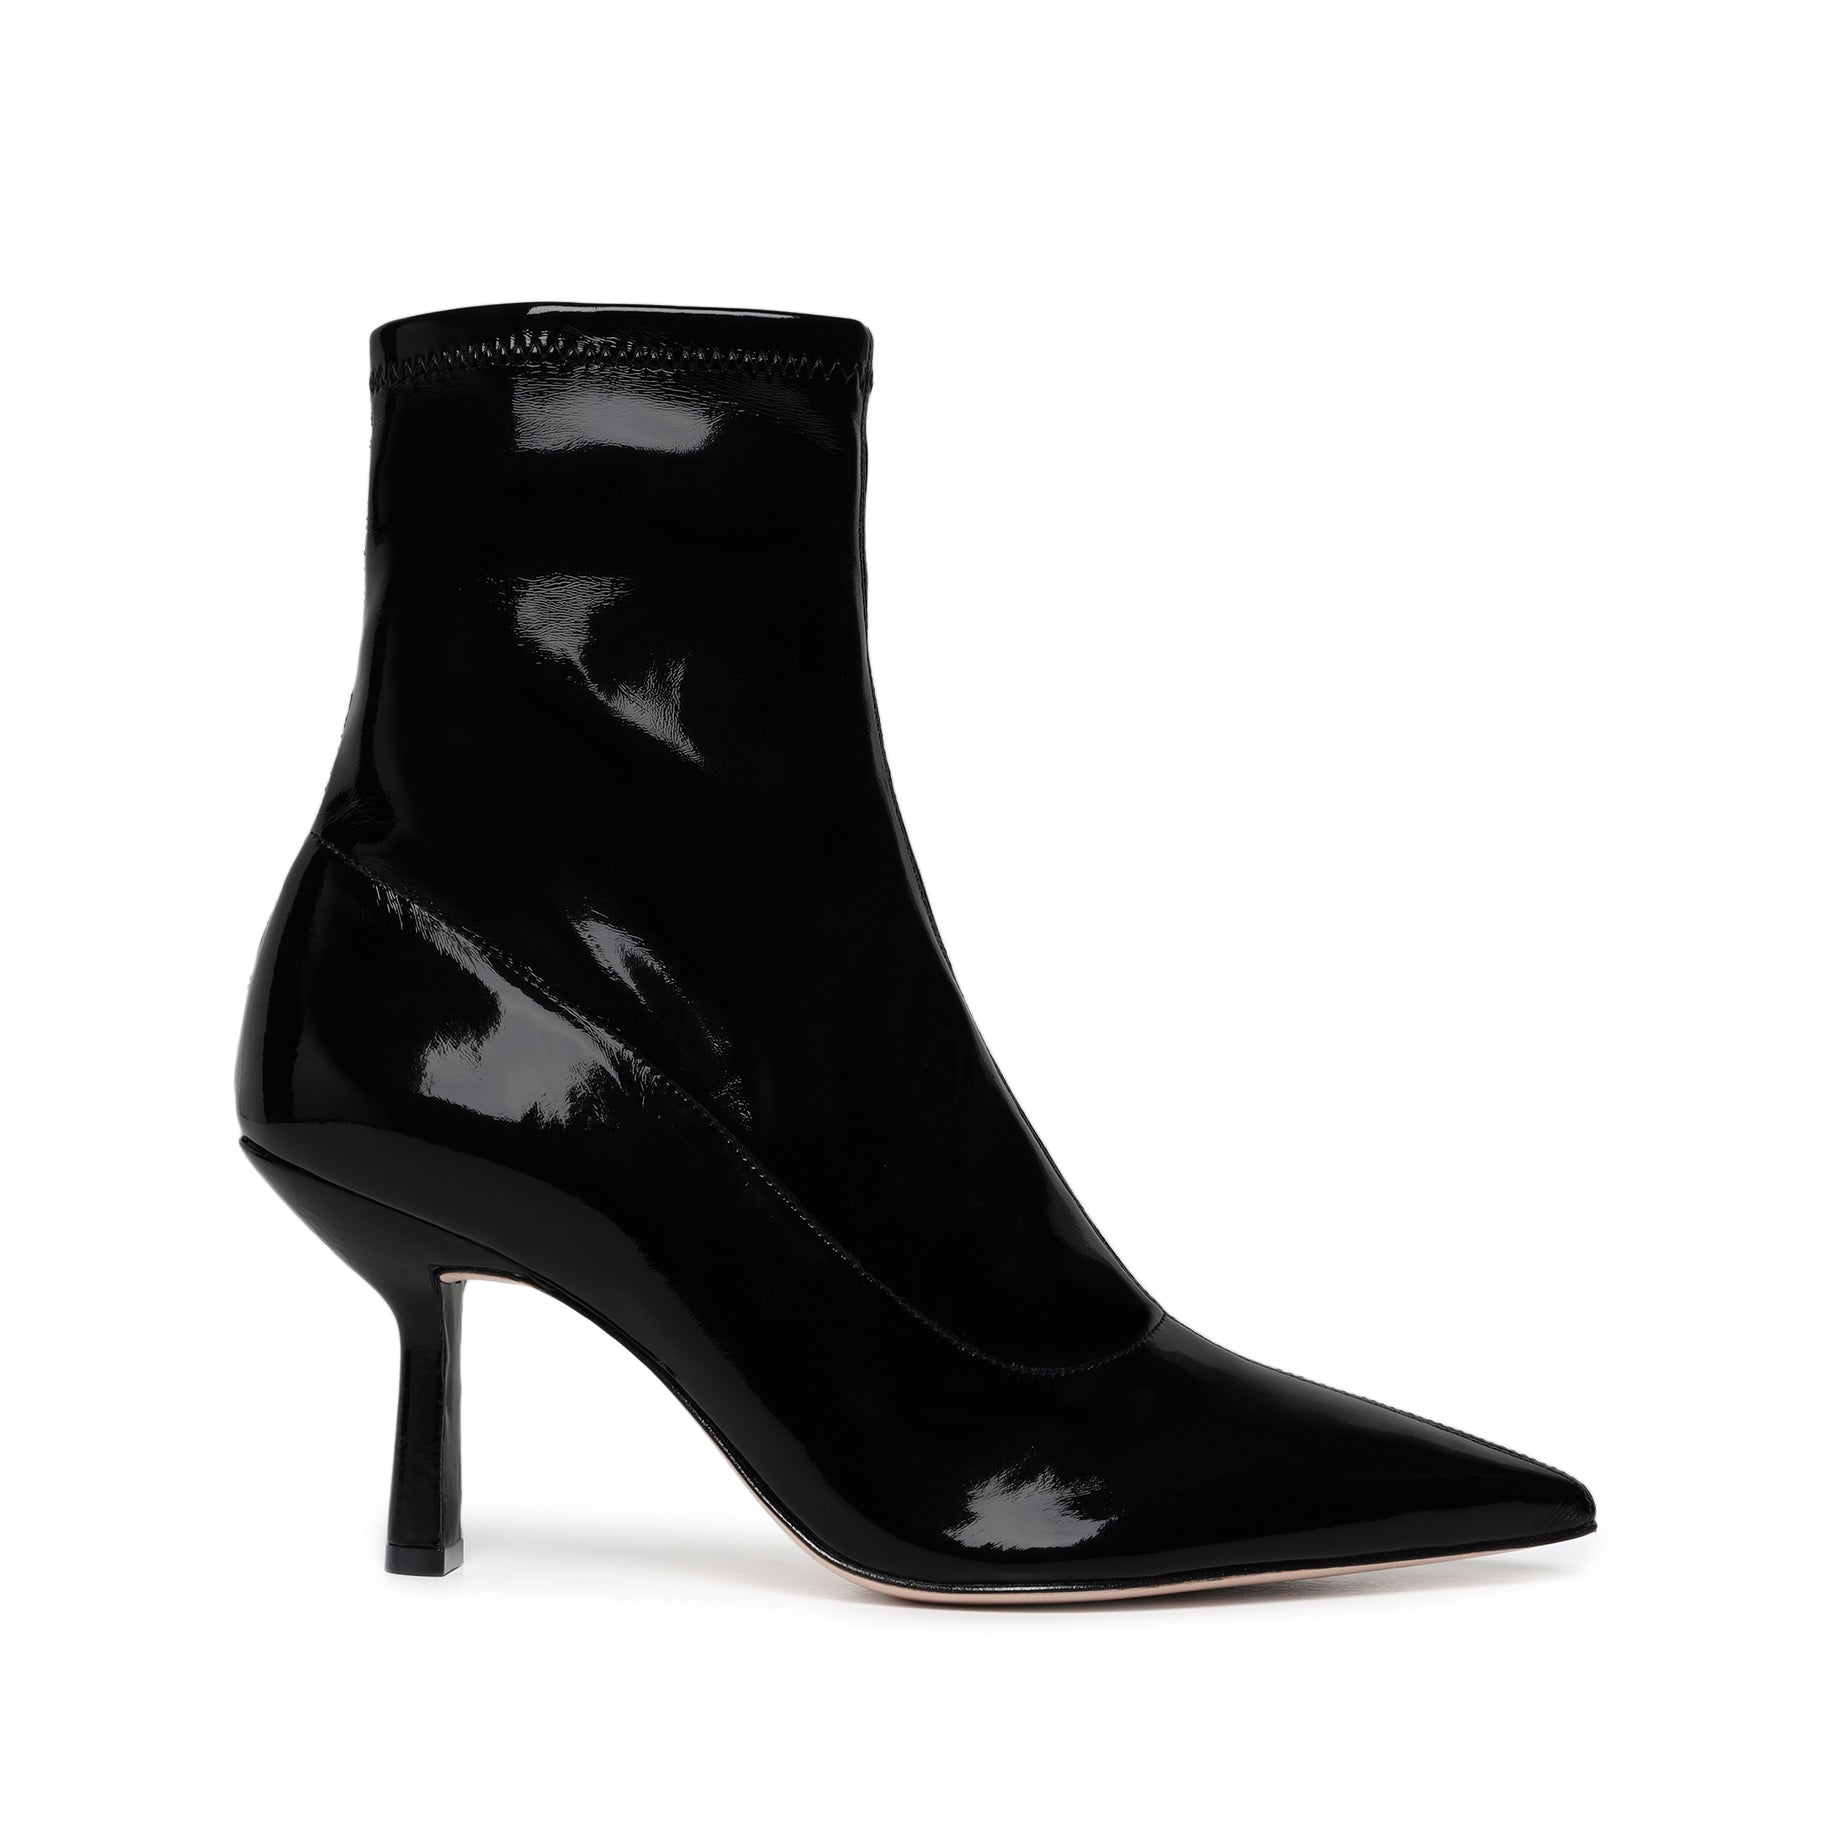 Charleni Patent Leather Bootie